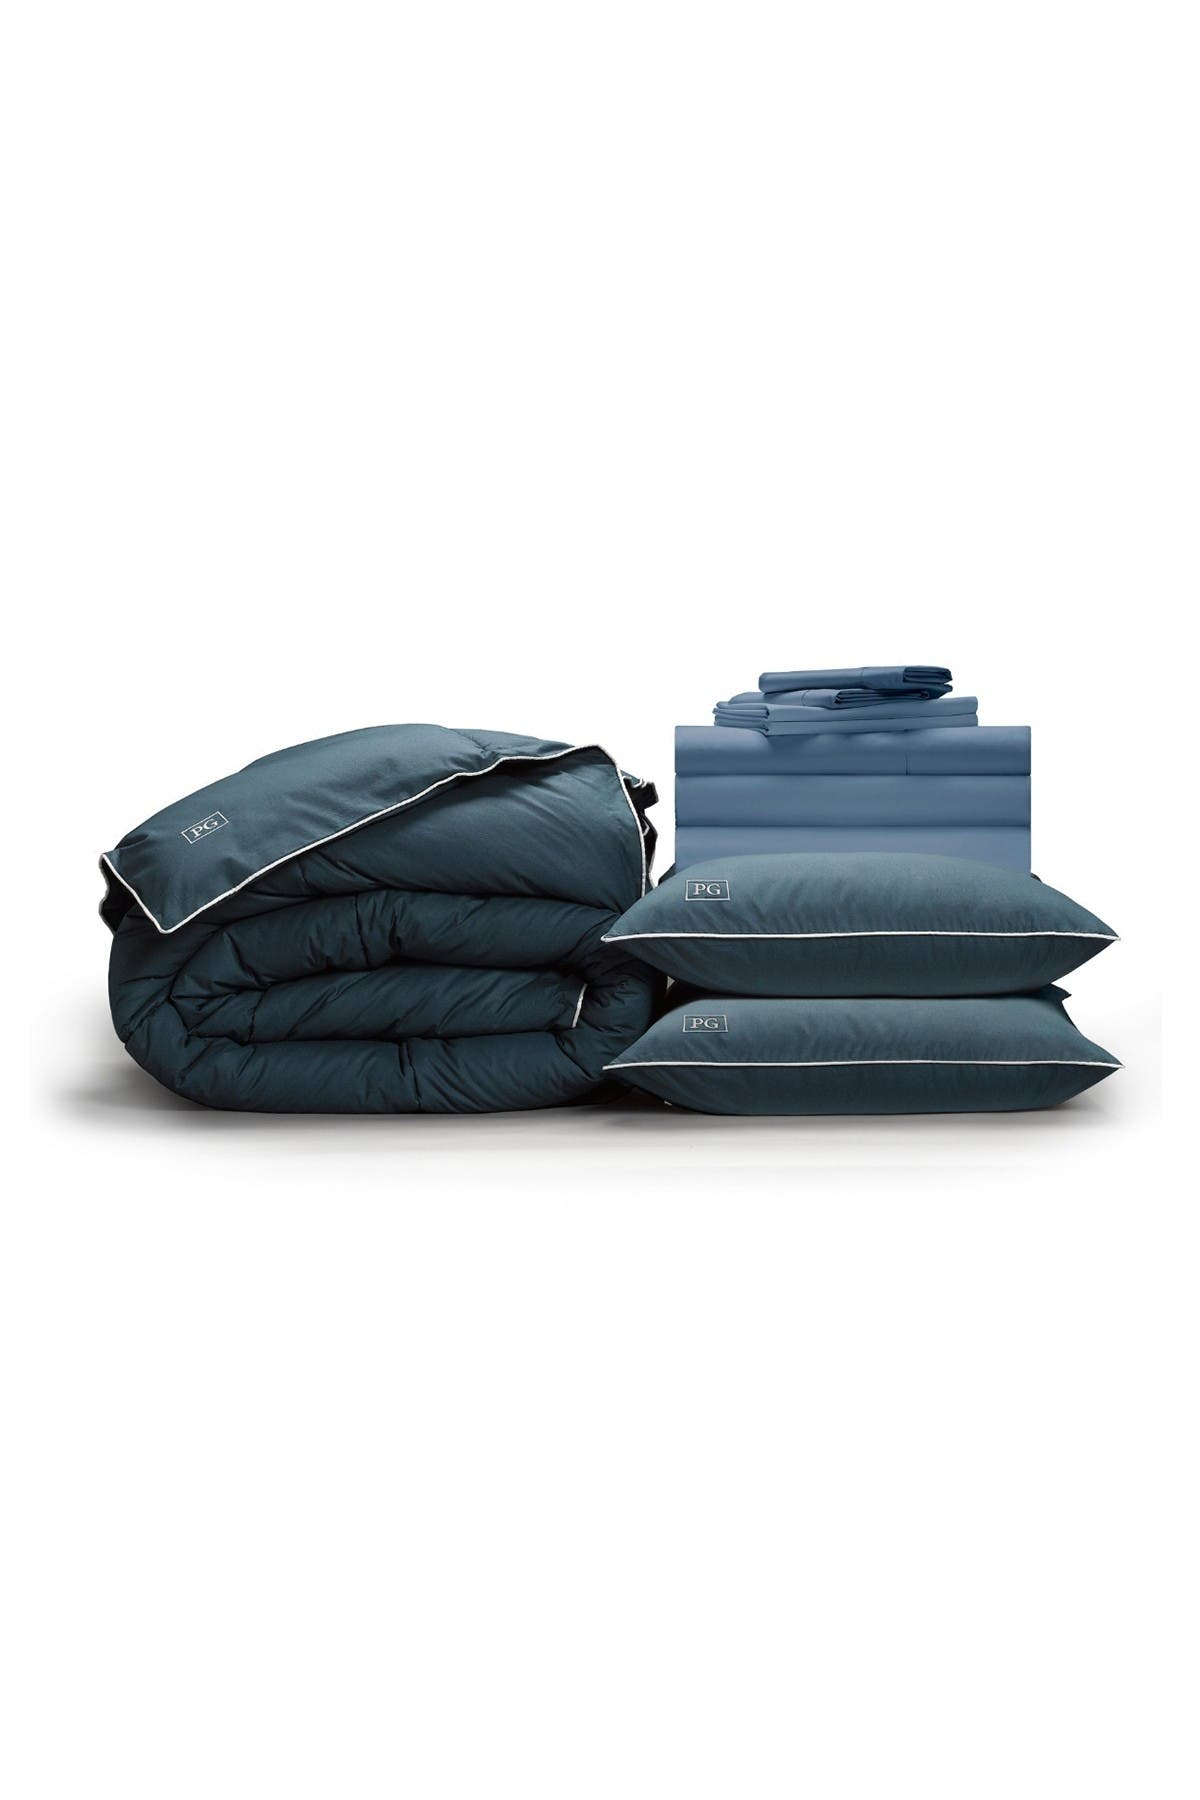 Image of Pillow Guy Full Luxe Soft & Smooth Perfect Down Alt Gel Bedding Set - Cadet Blue